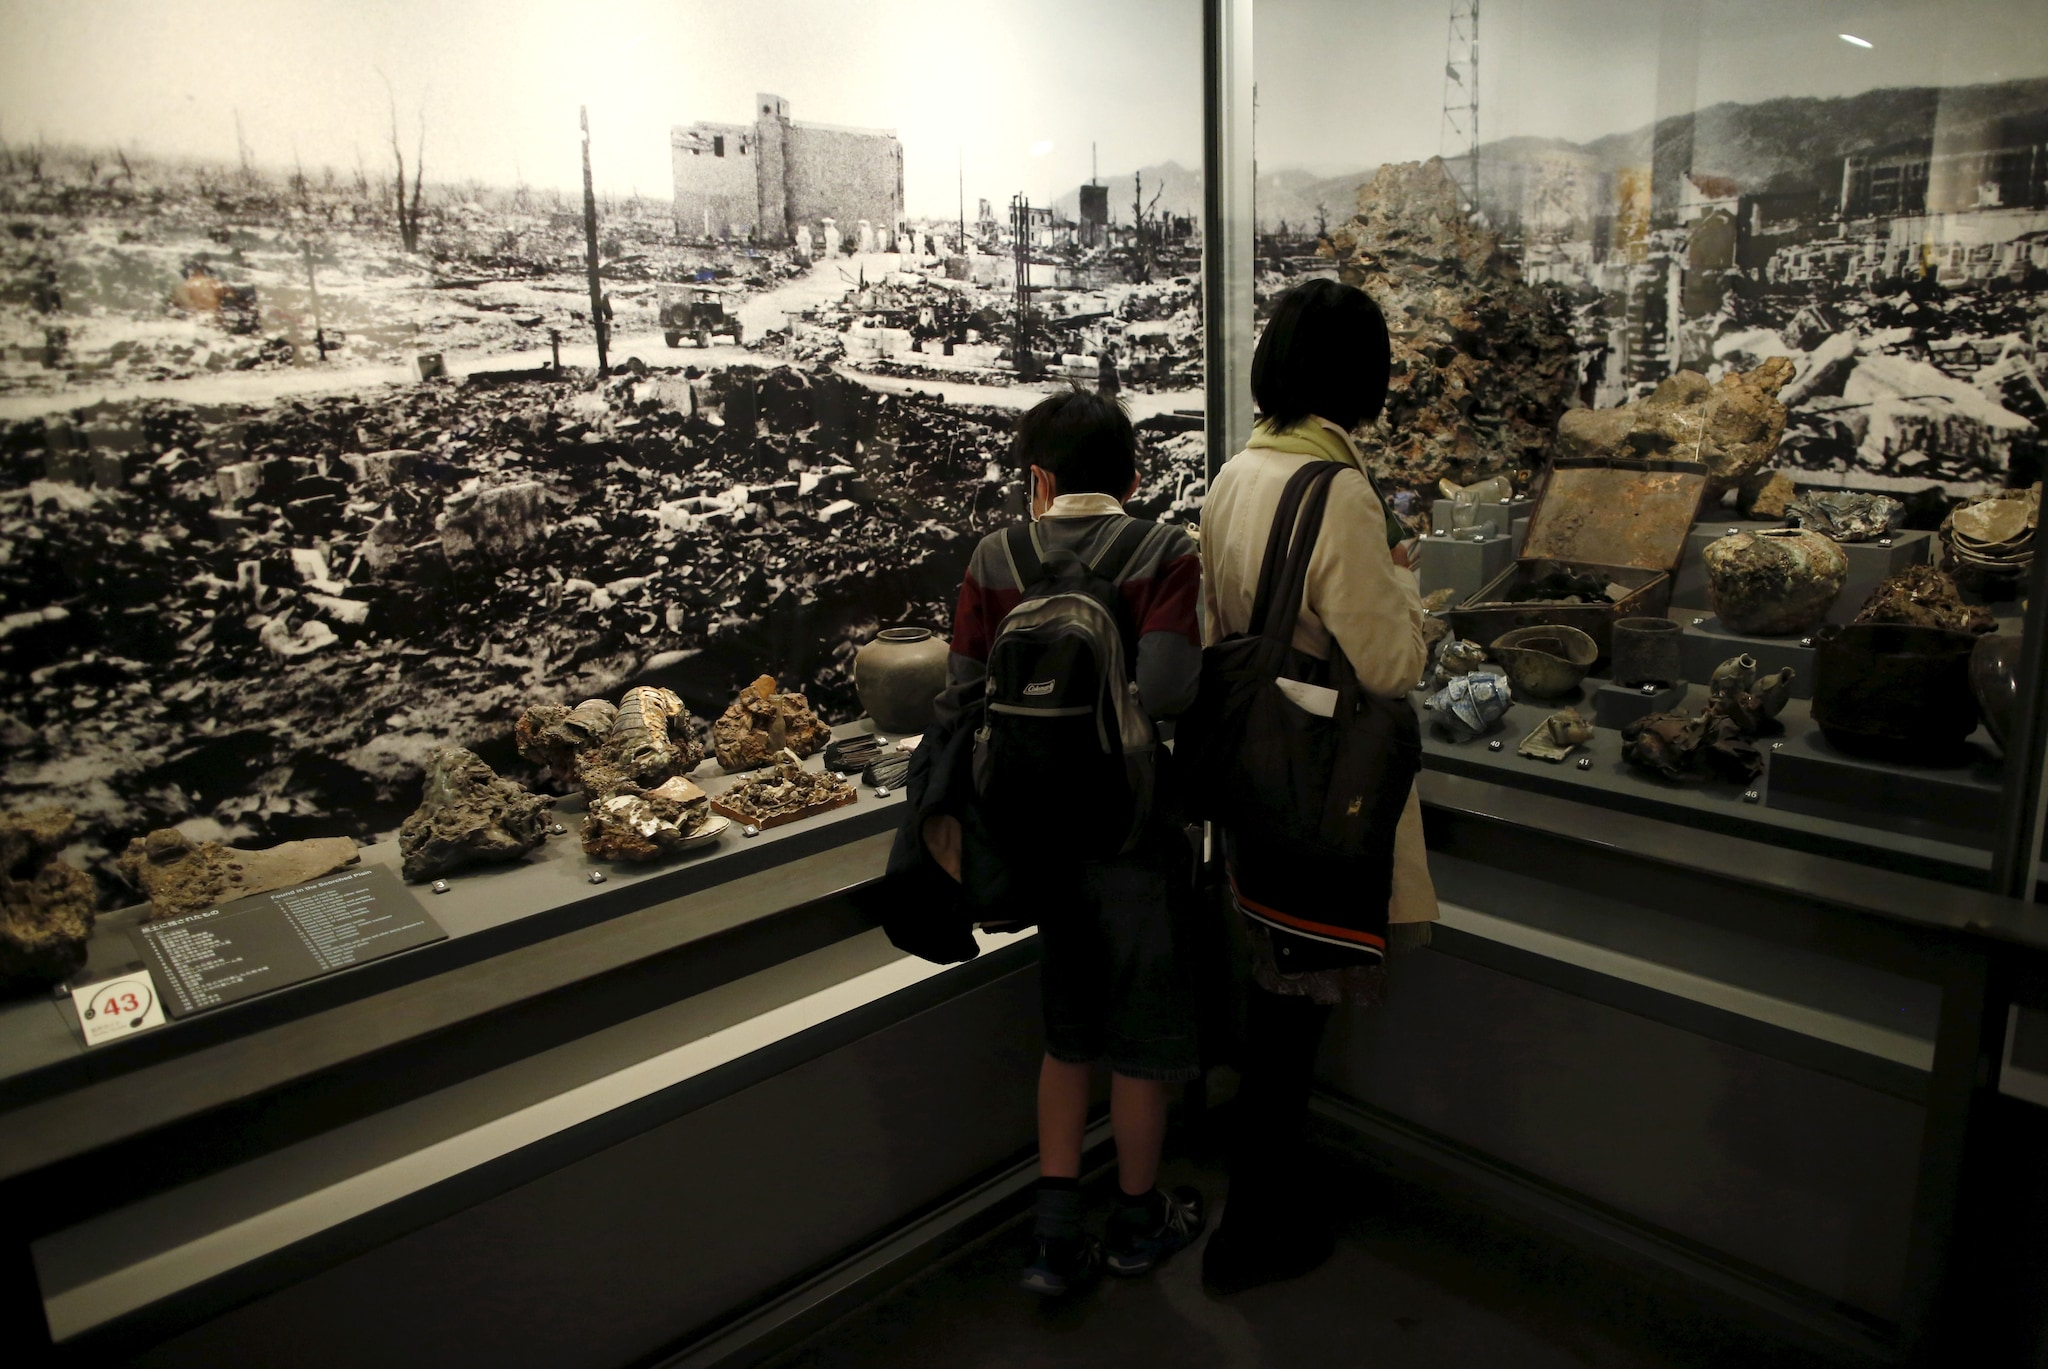 Hiroshima Marks 73rd Anniversary of Atomic Bombing in WWII